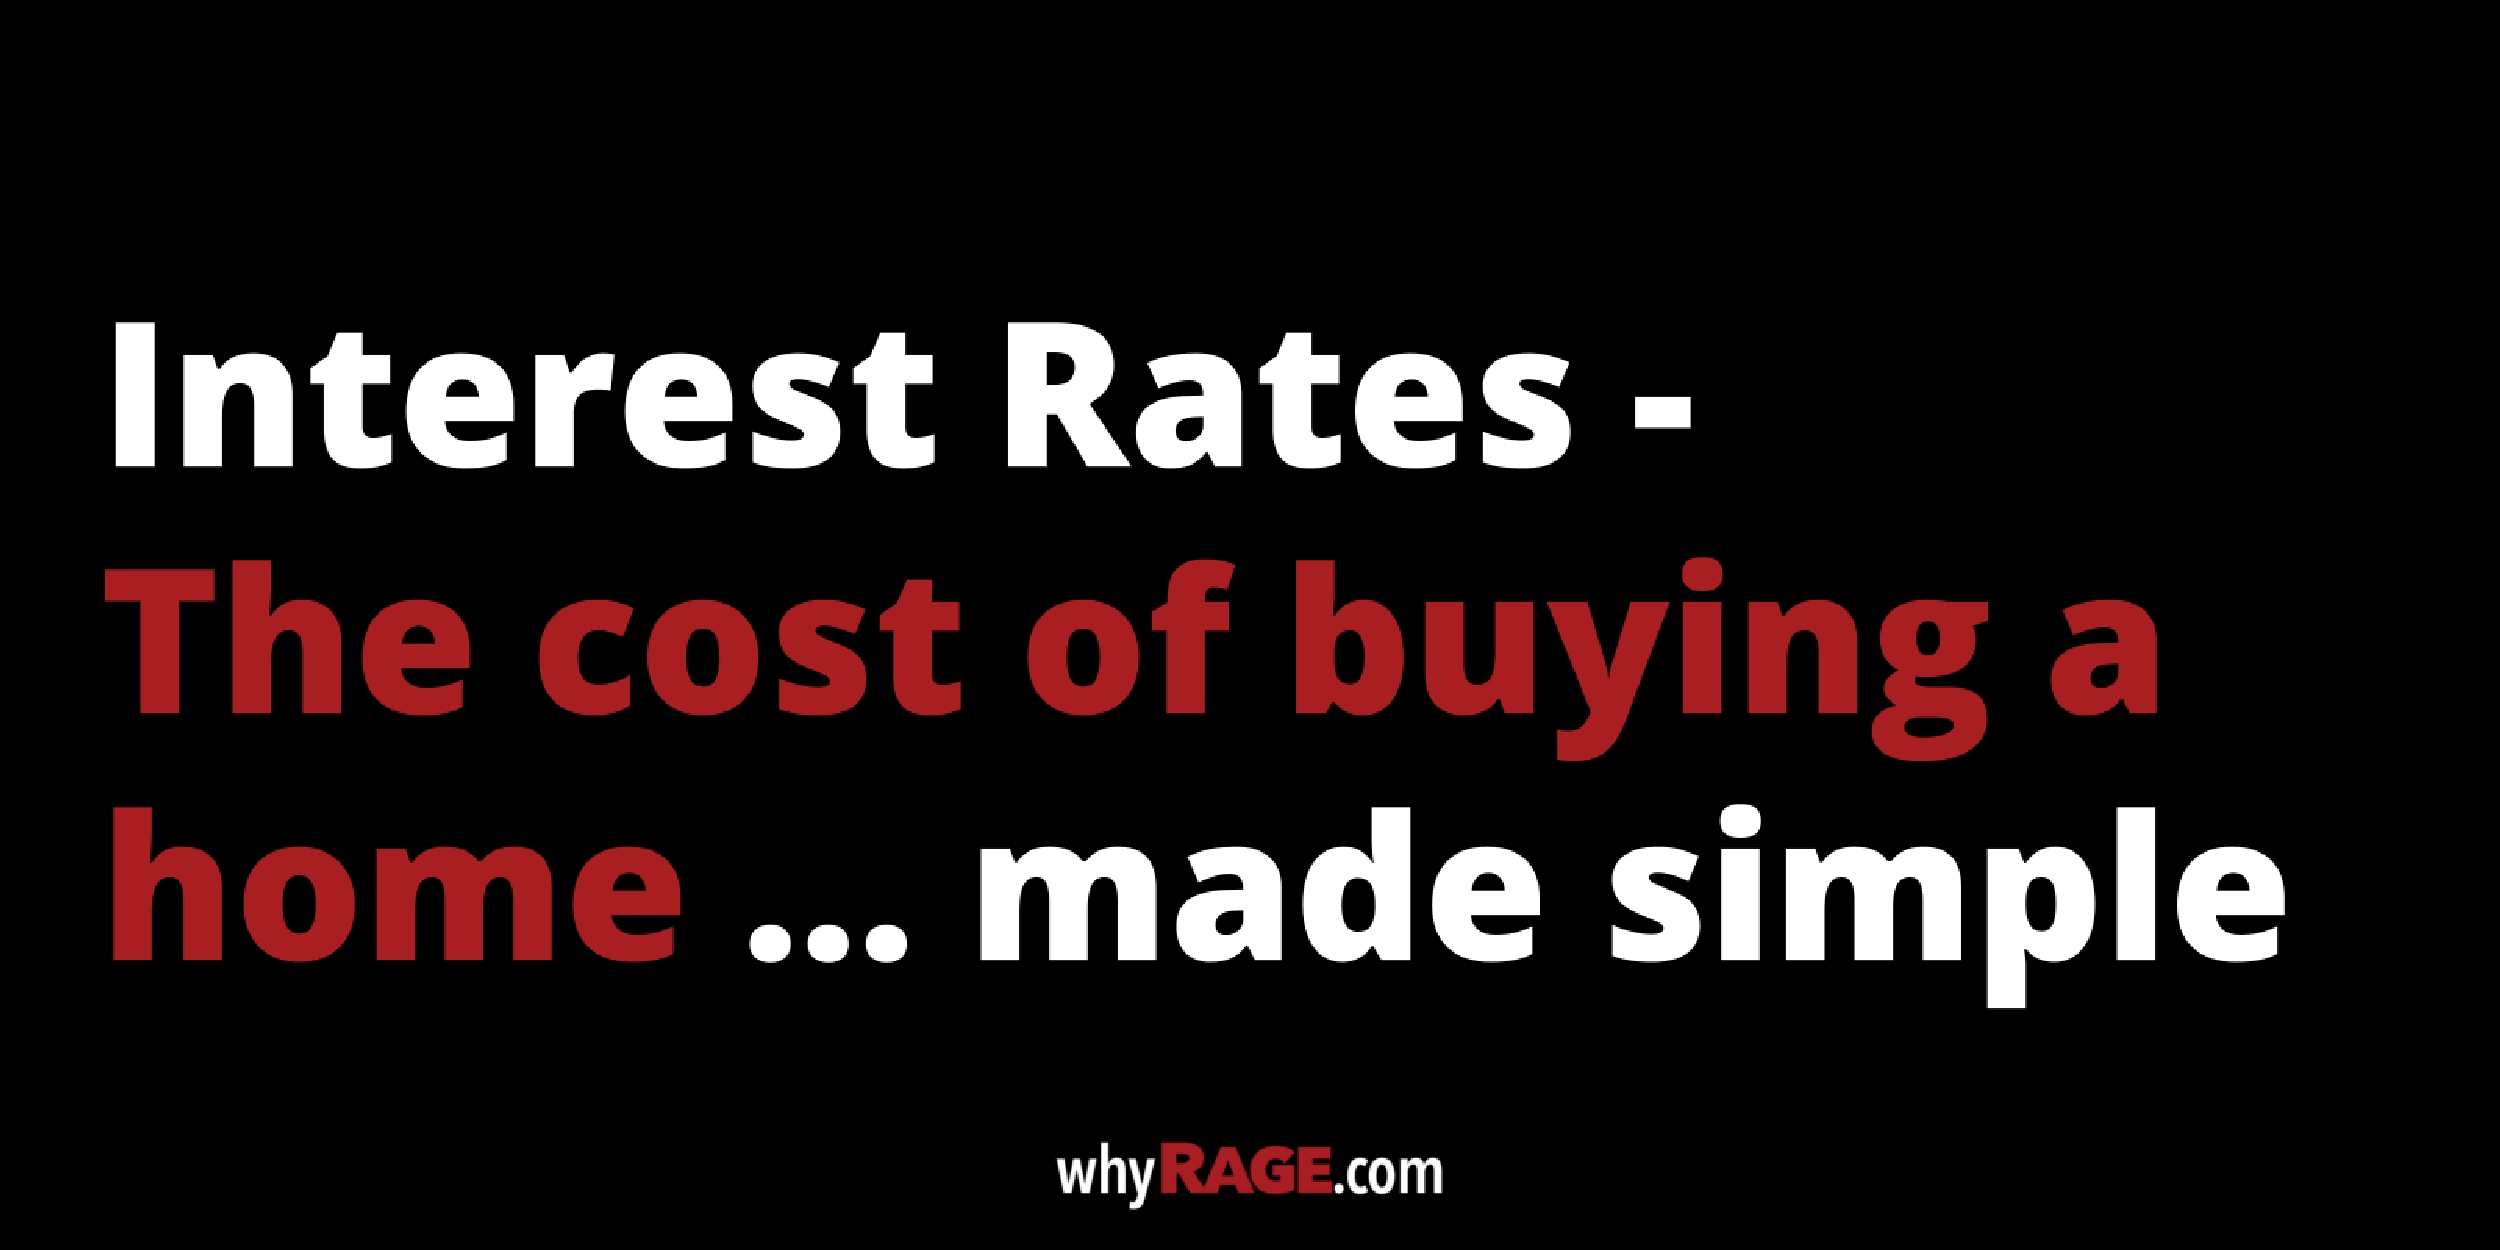 Interest Rates Made Simple.png